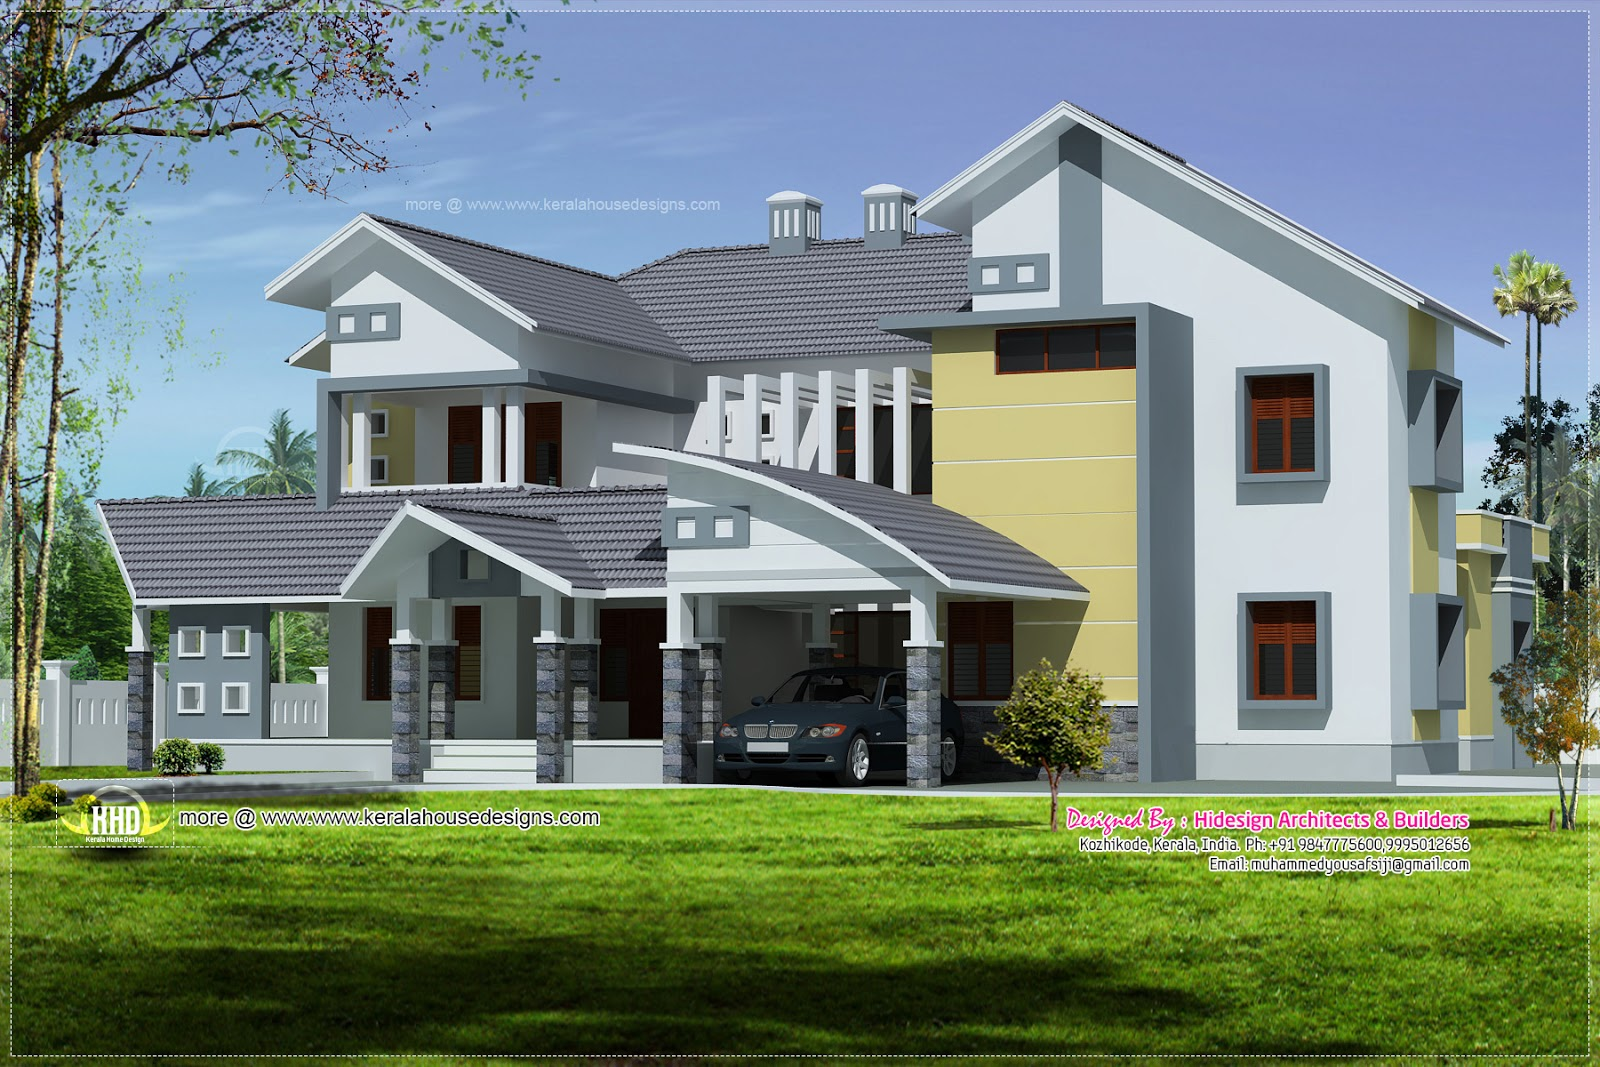 Modern Mix Luxury Home Exterior Design Kerala Home Design And Floor Plans